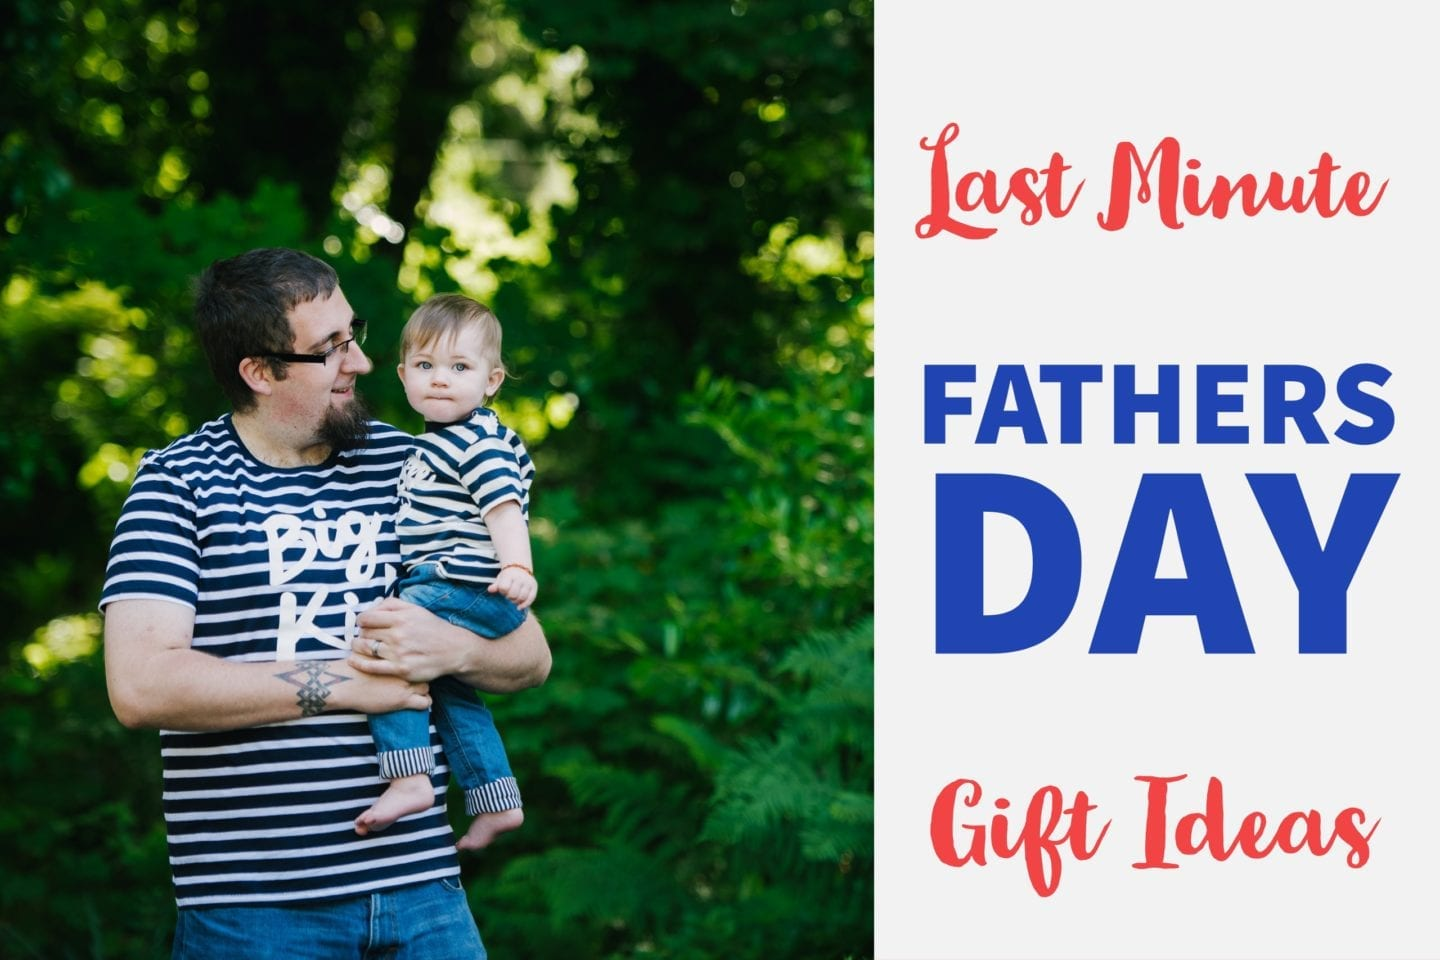 Last Minute Fathers Day Gifts! – It's not to late to order these items!!